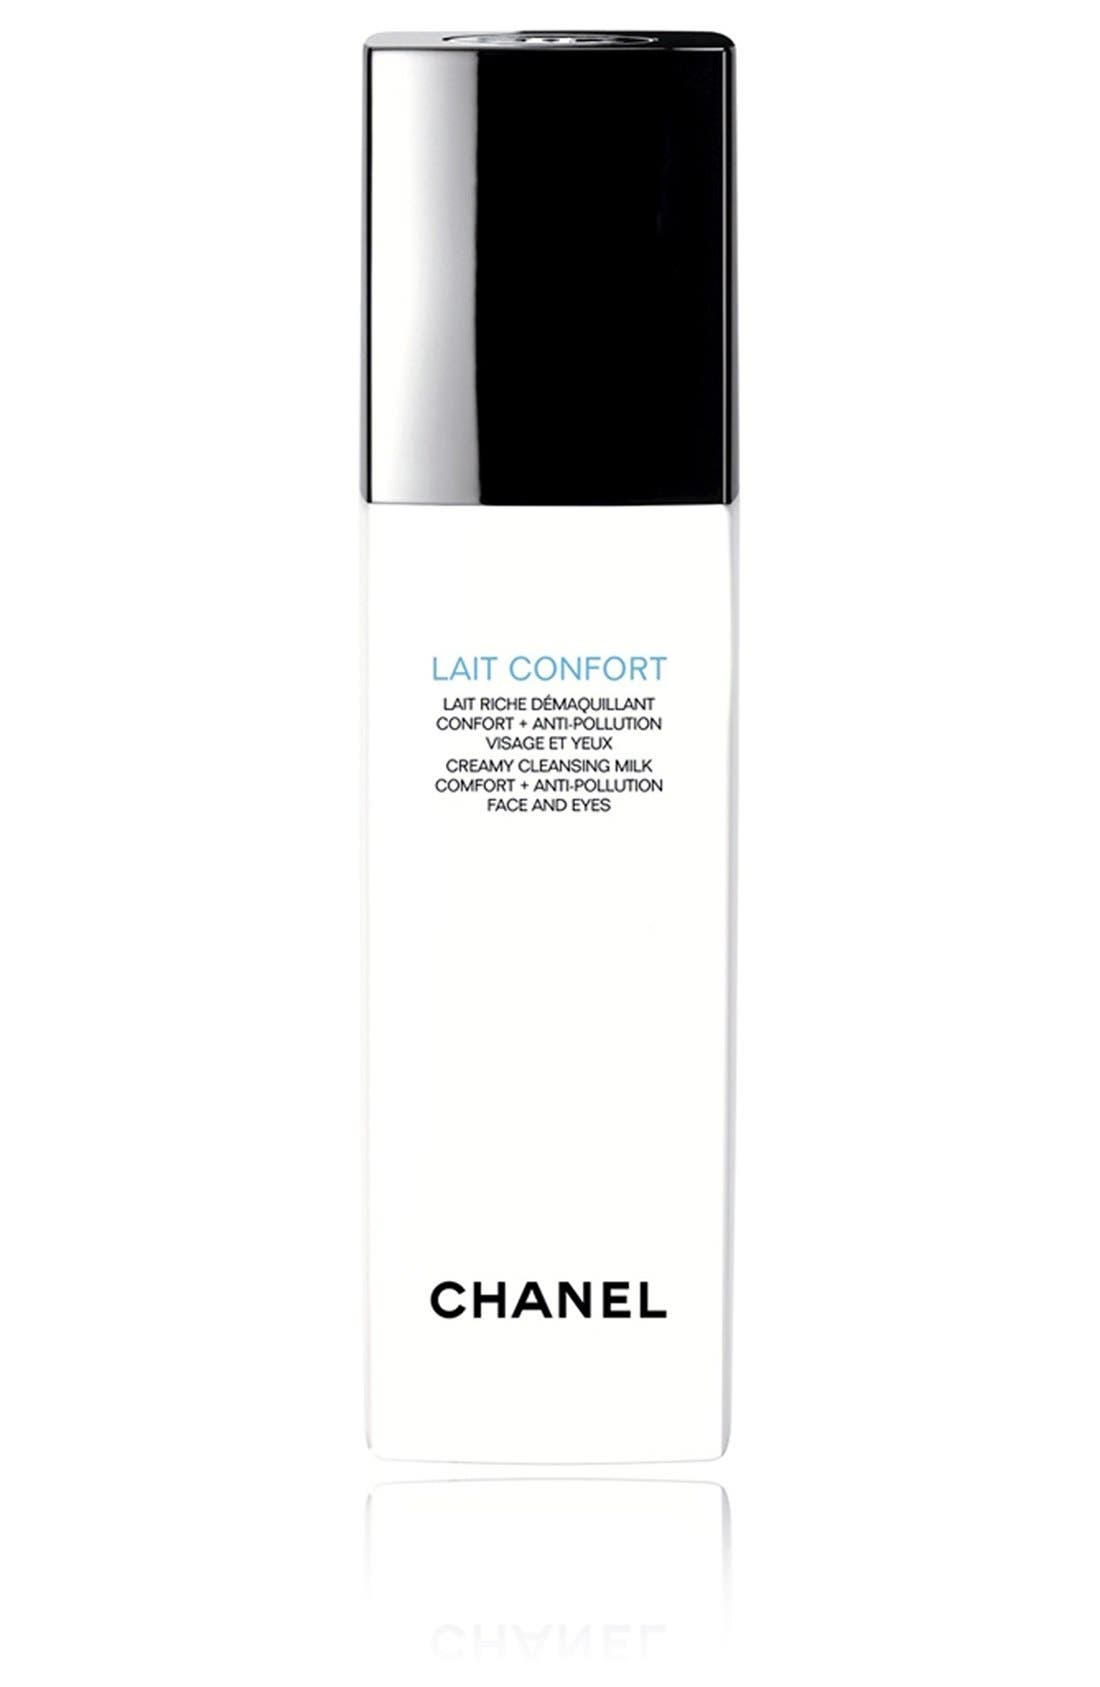 CHANEL LAIT CONFORT  Creamy Cleansing Milk Comfort + Anti-Pollution Face & Eyes